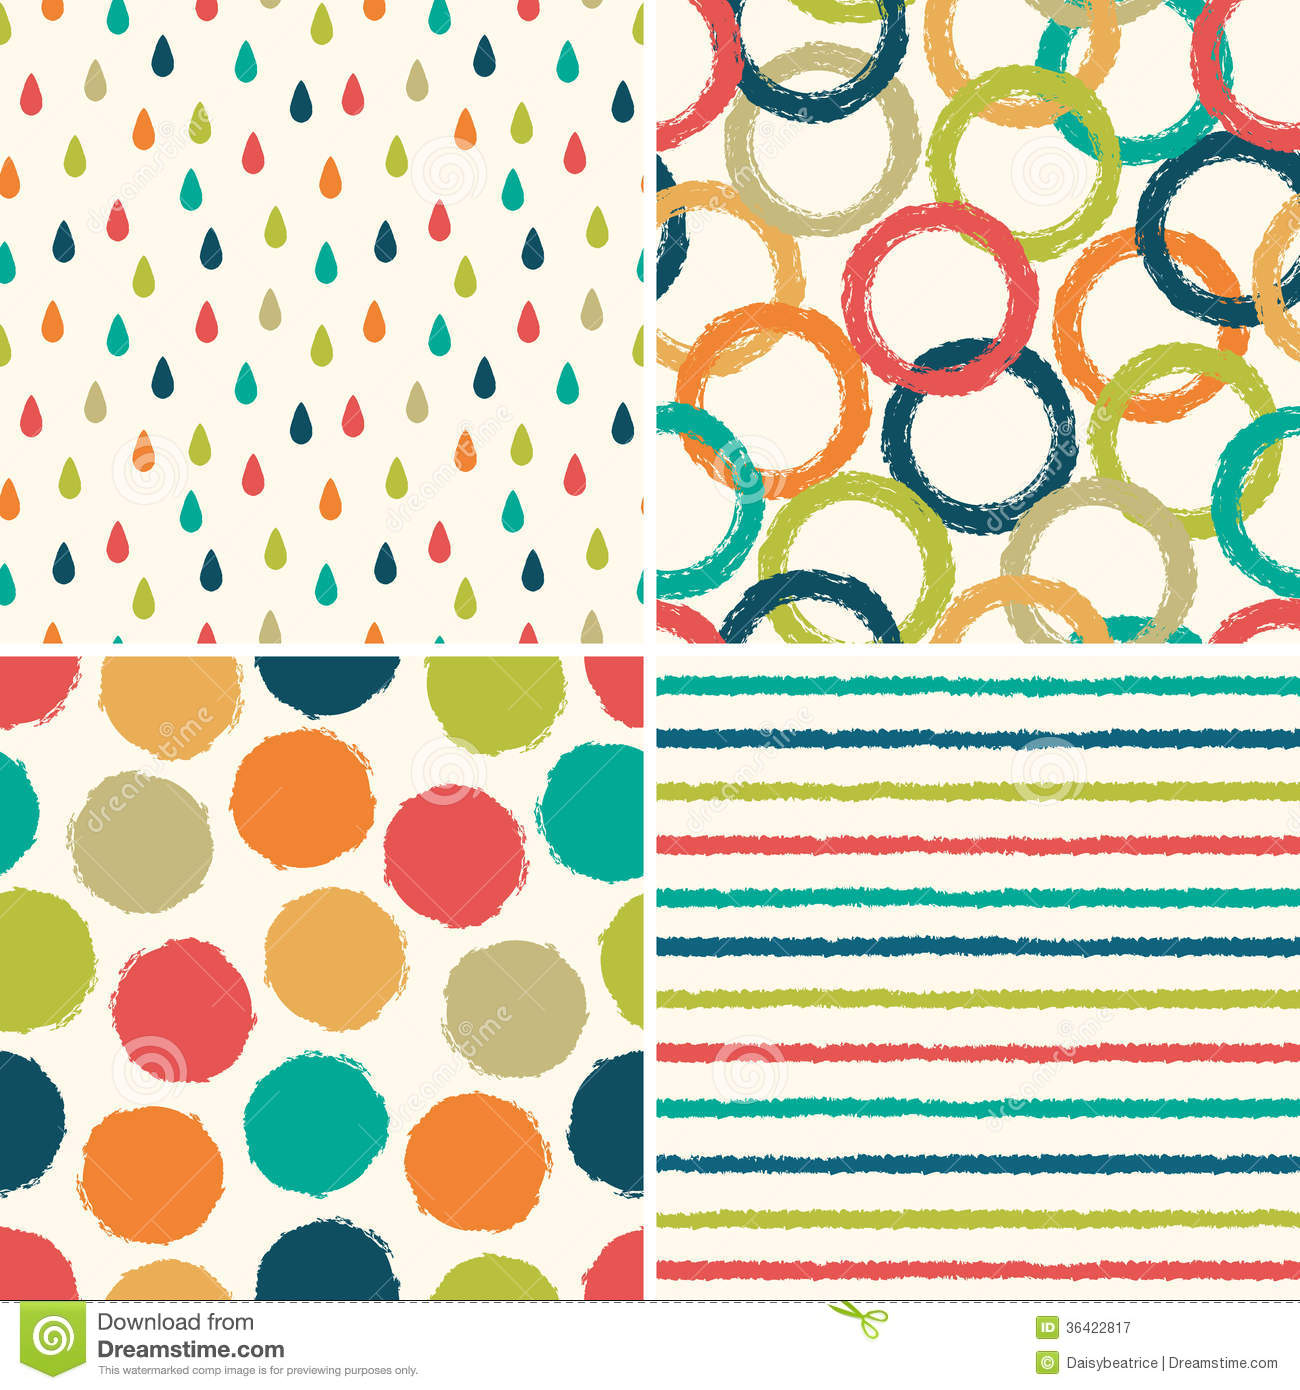 Hipster backgrounds triangle pictures